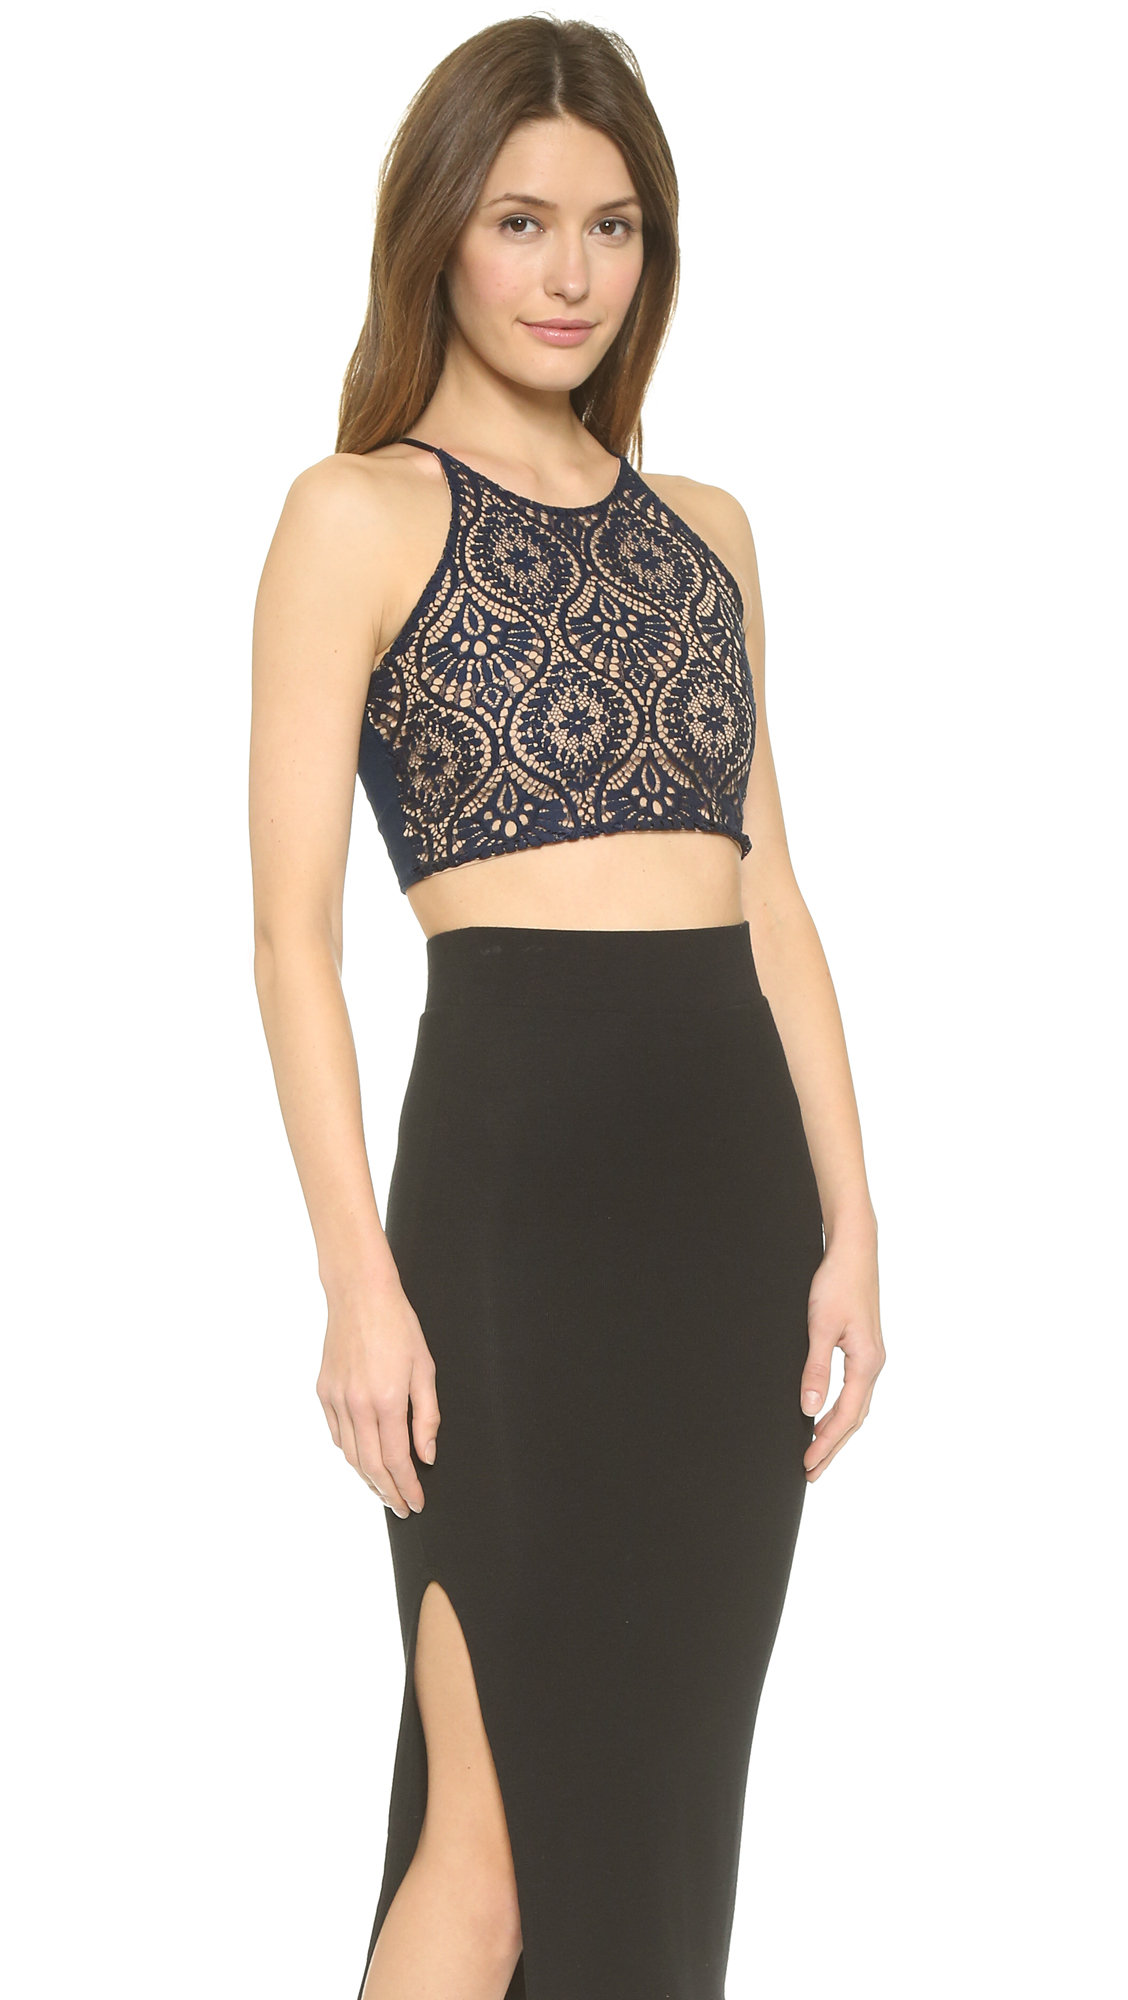 dbf5300acf Lyst - David Lerner Lace Front Crop Top - Ink in Blue